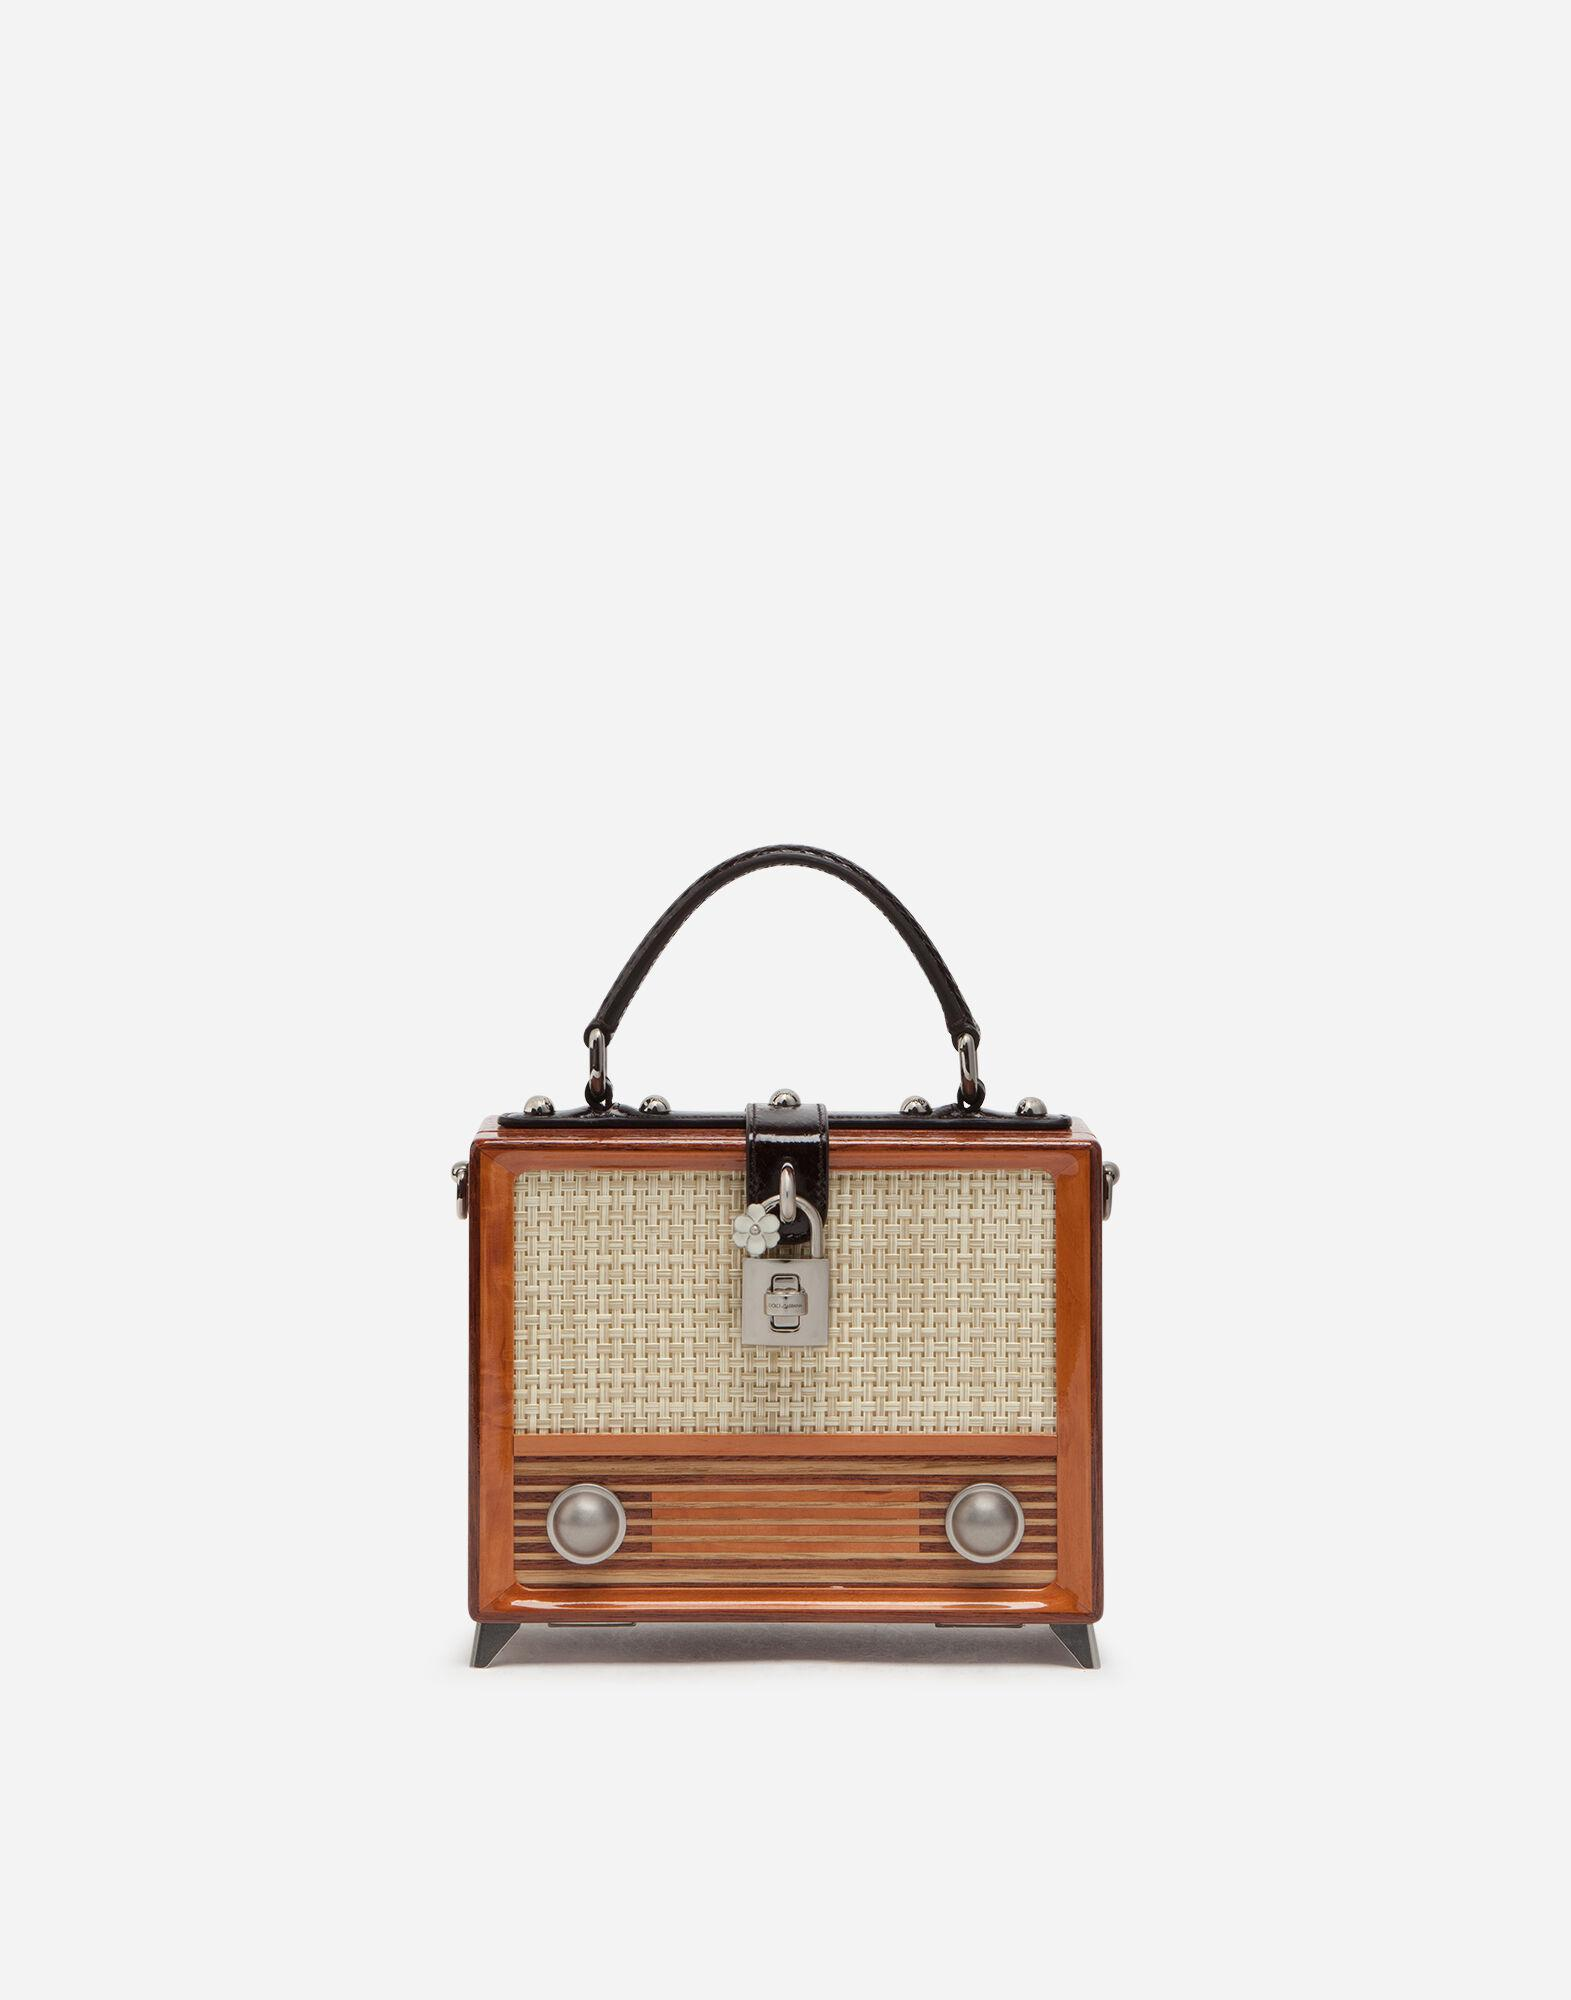 Radio Dolce Box bag in hand-painted wood